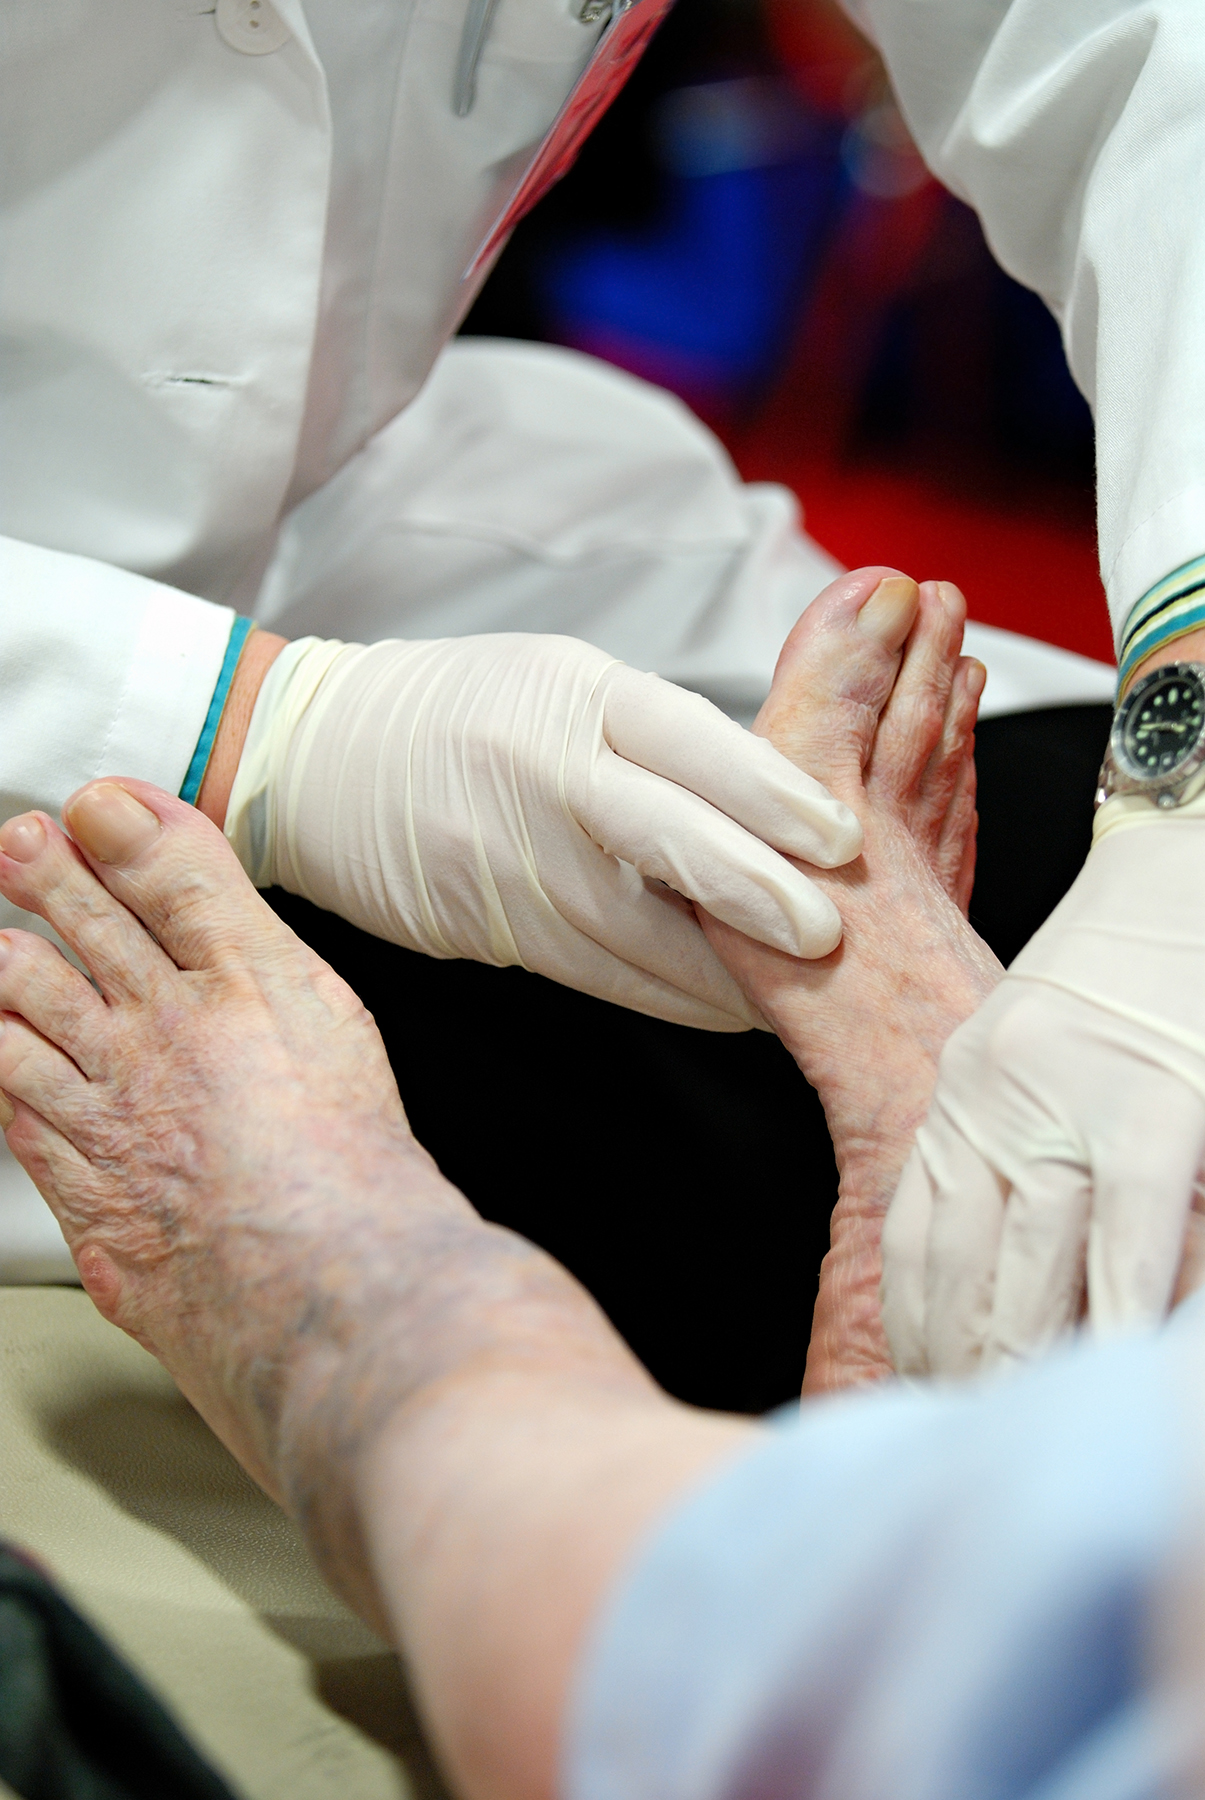 Doctor examining an elderly person's diabetic foot